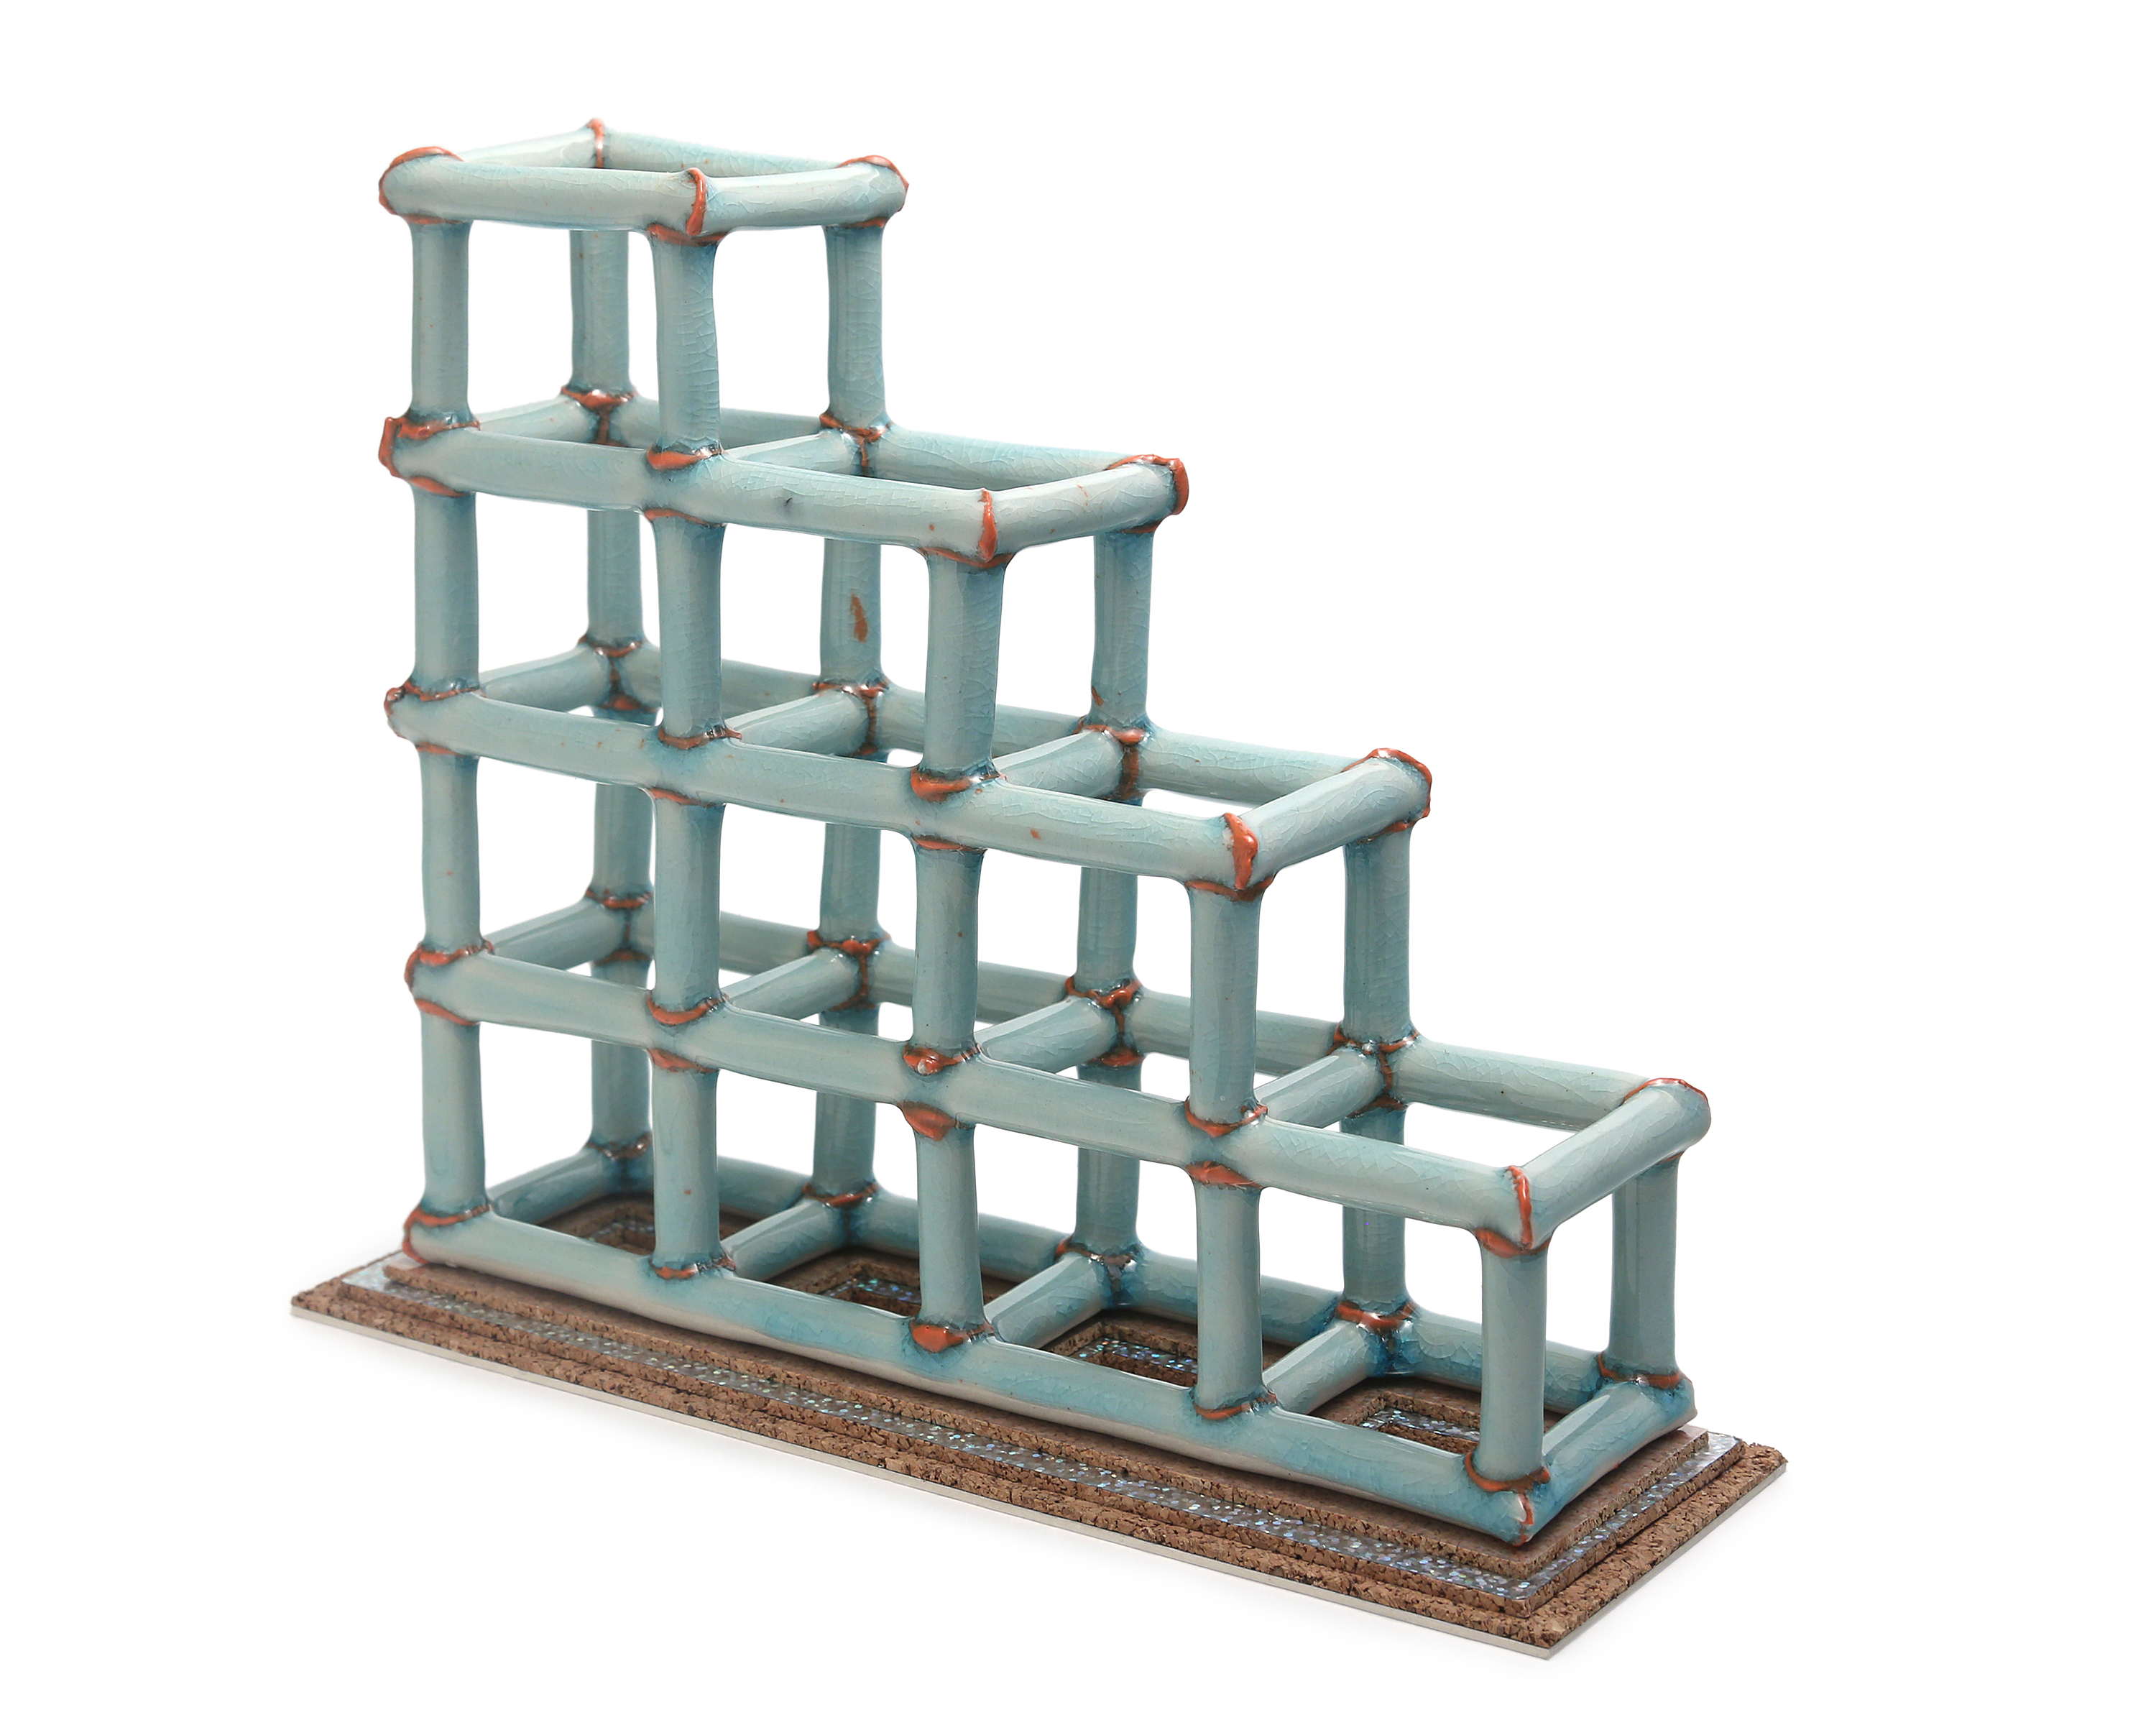 watery blue structure, elevated